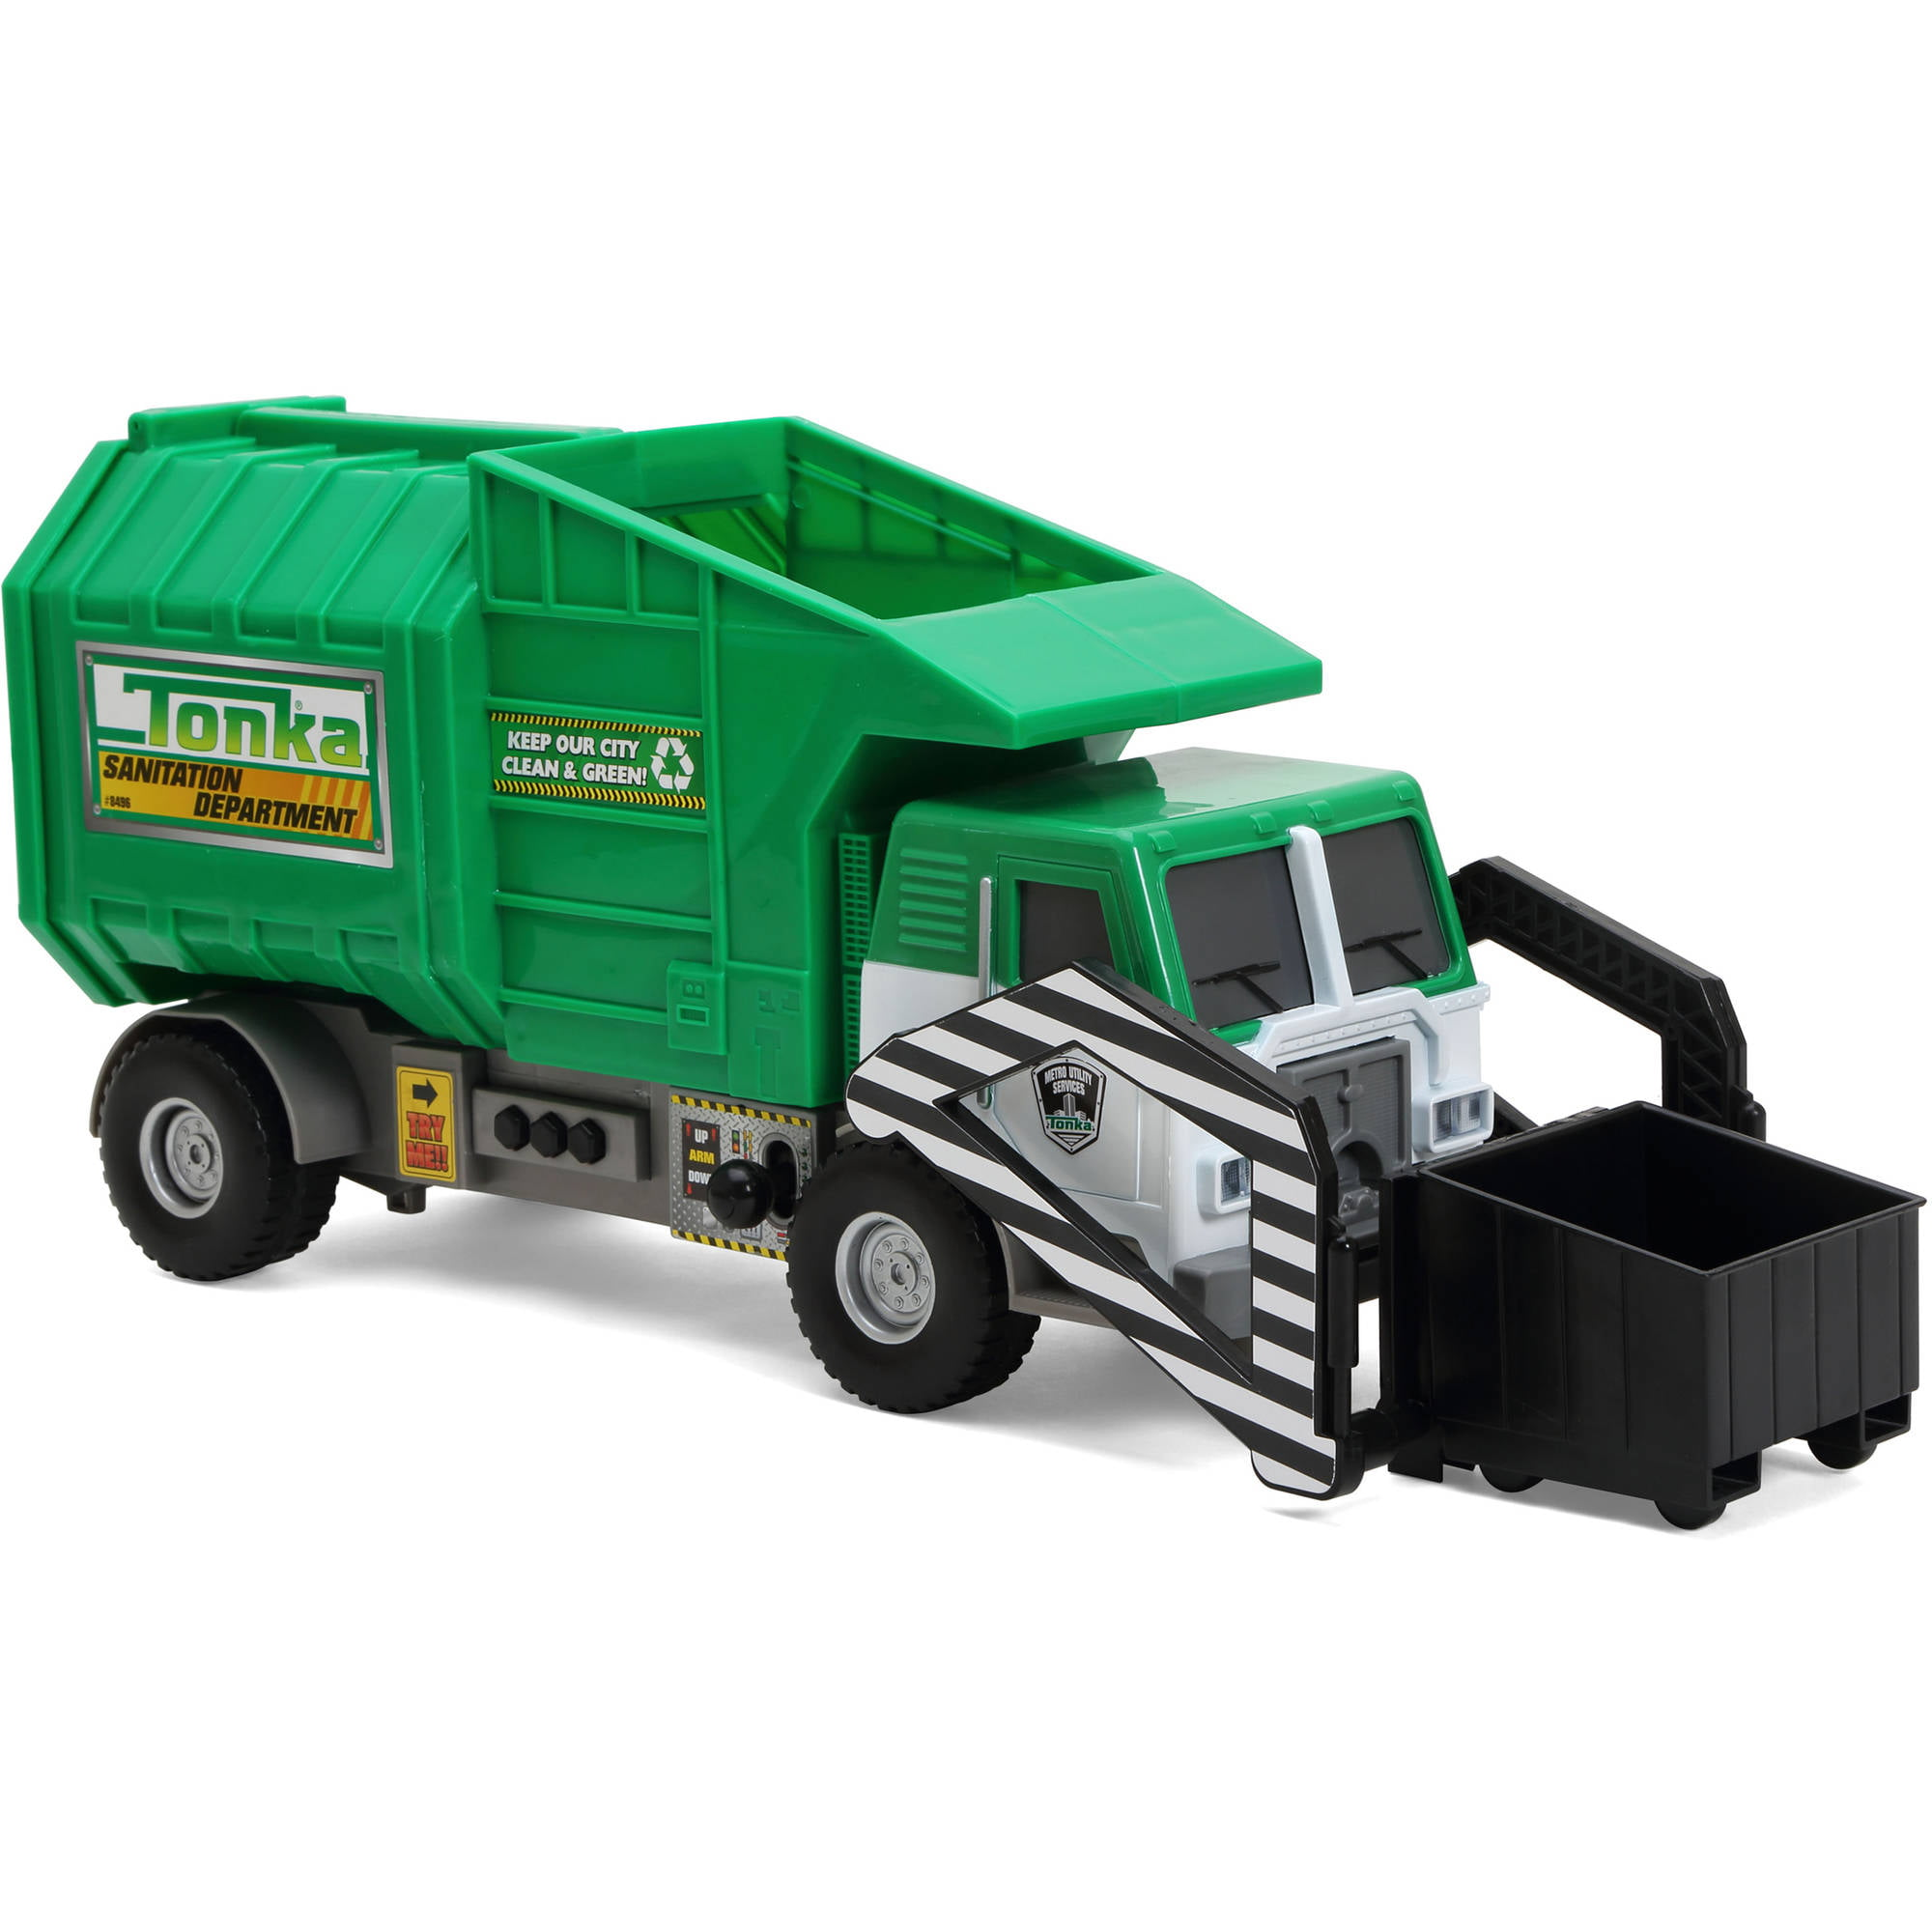 Get ready garbage truck coloring book - Get Ready Garbage Truck Coloring Book 22